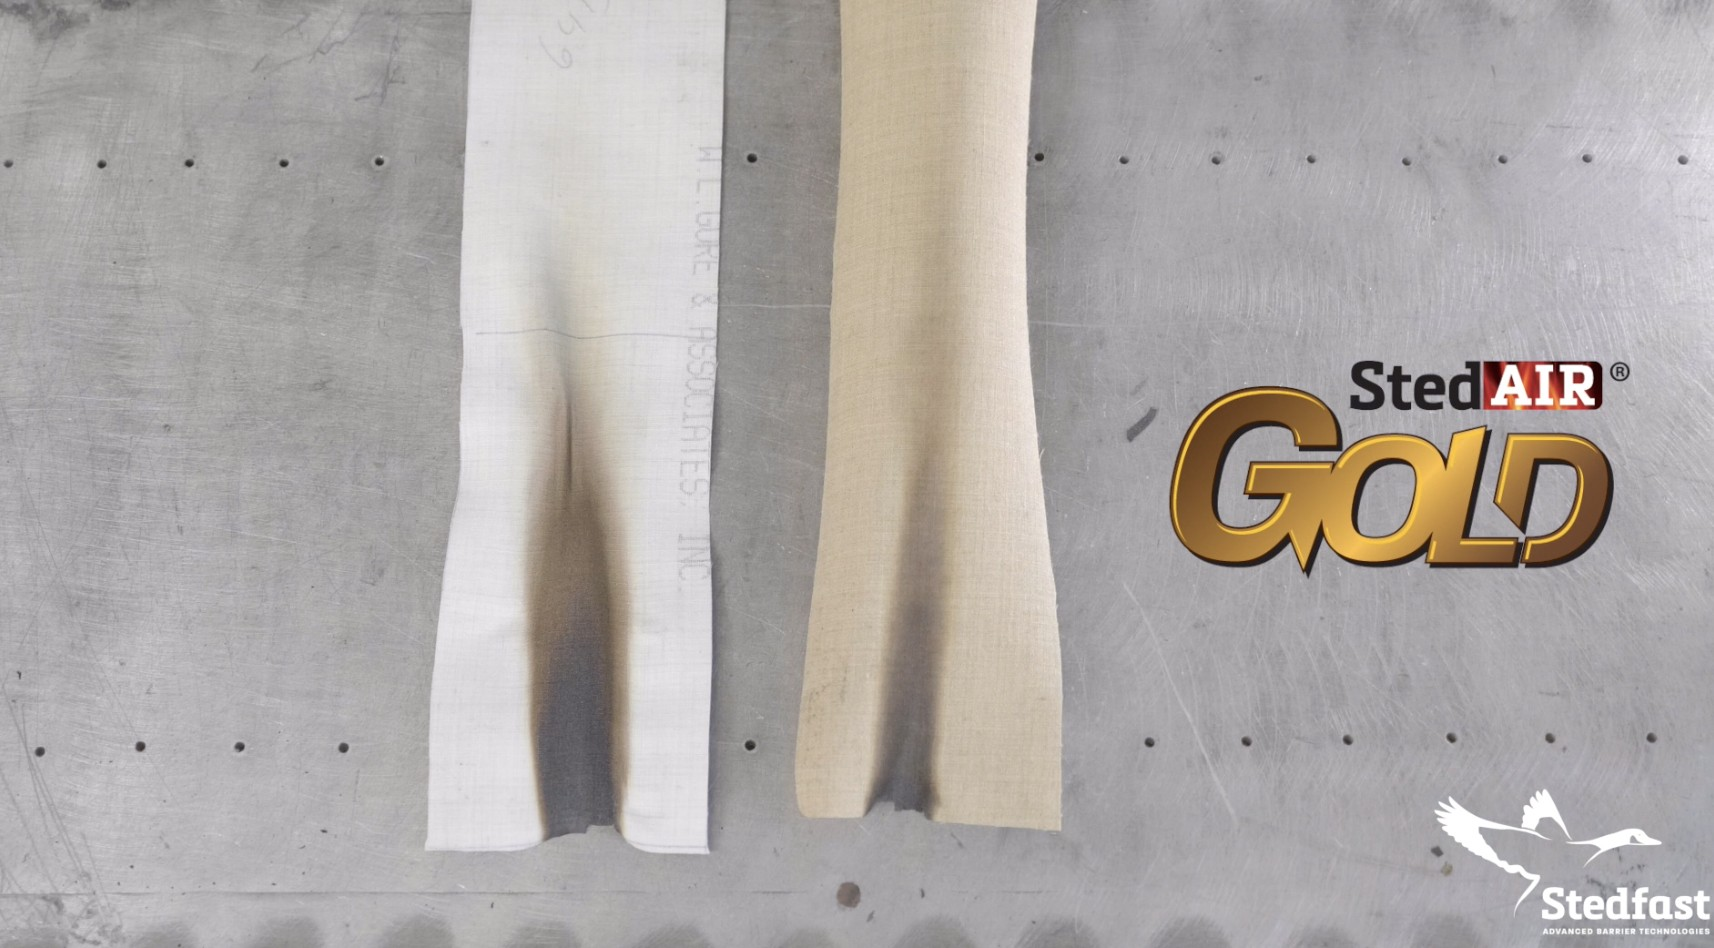 Stedair® Gold Superior Flame Protection